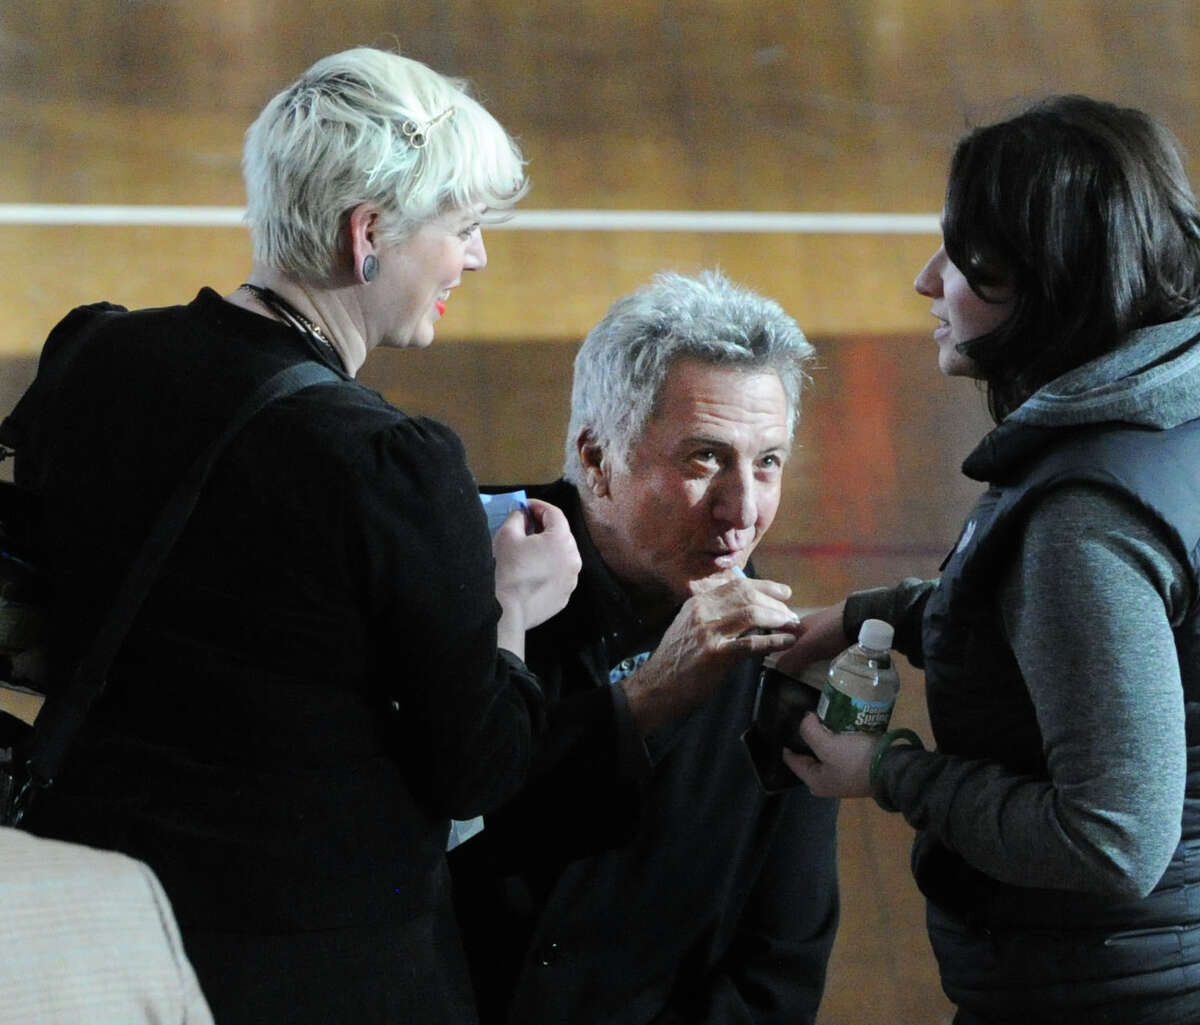 Actor Dustin Hoffman, center, takes a drink of a beverage on the set of